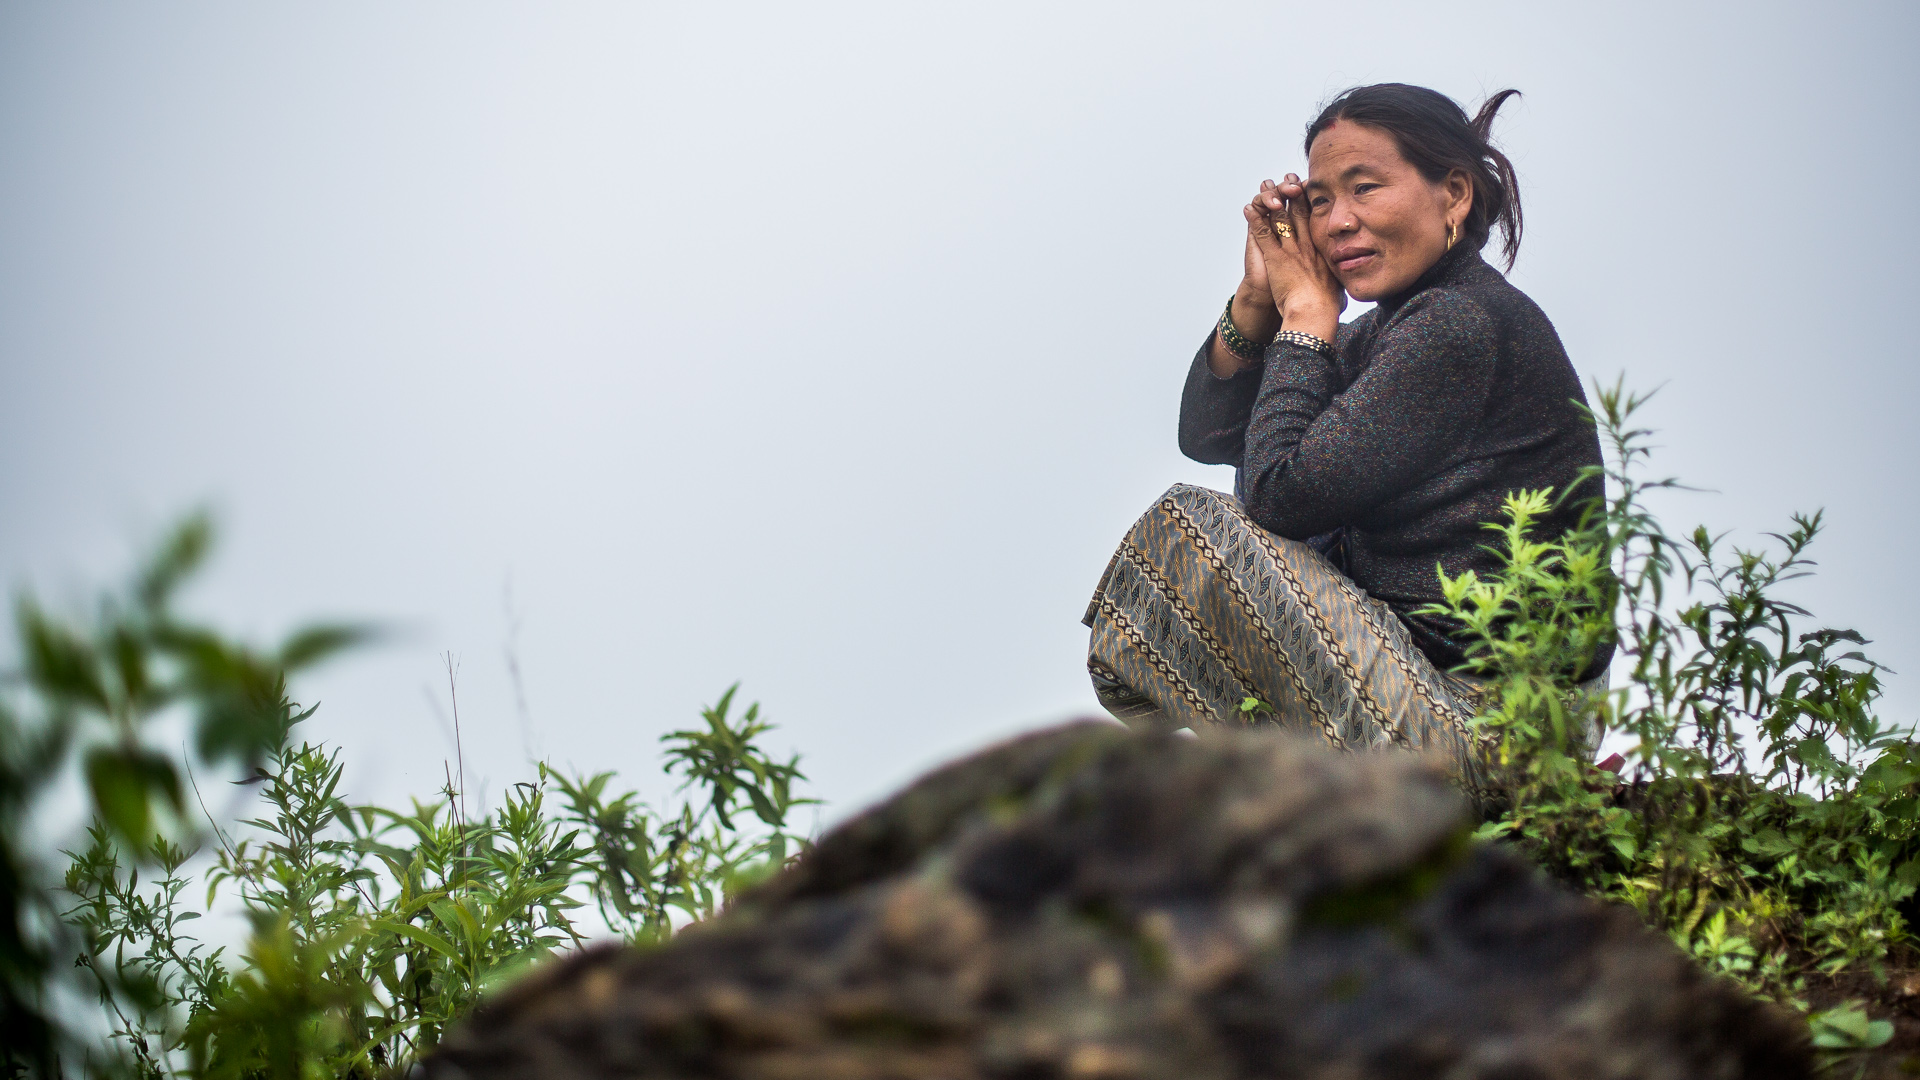 Lady who lost her house and family  looking over the valley thinking about past and future.